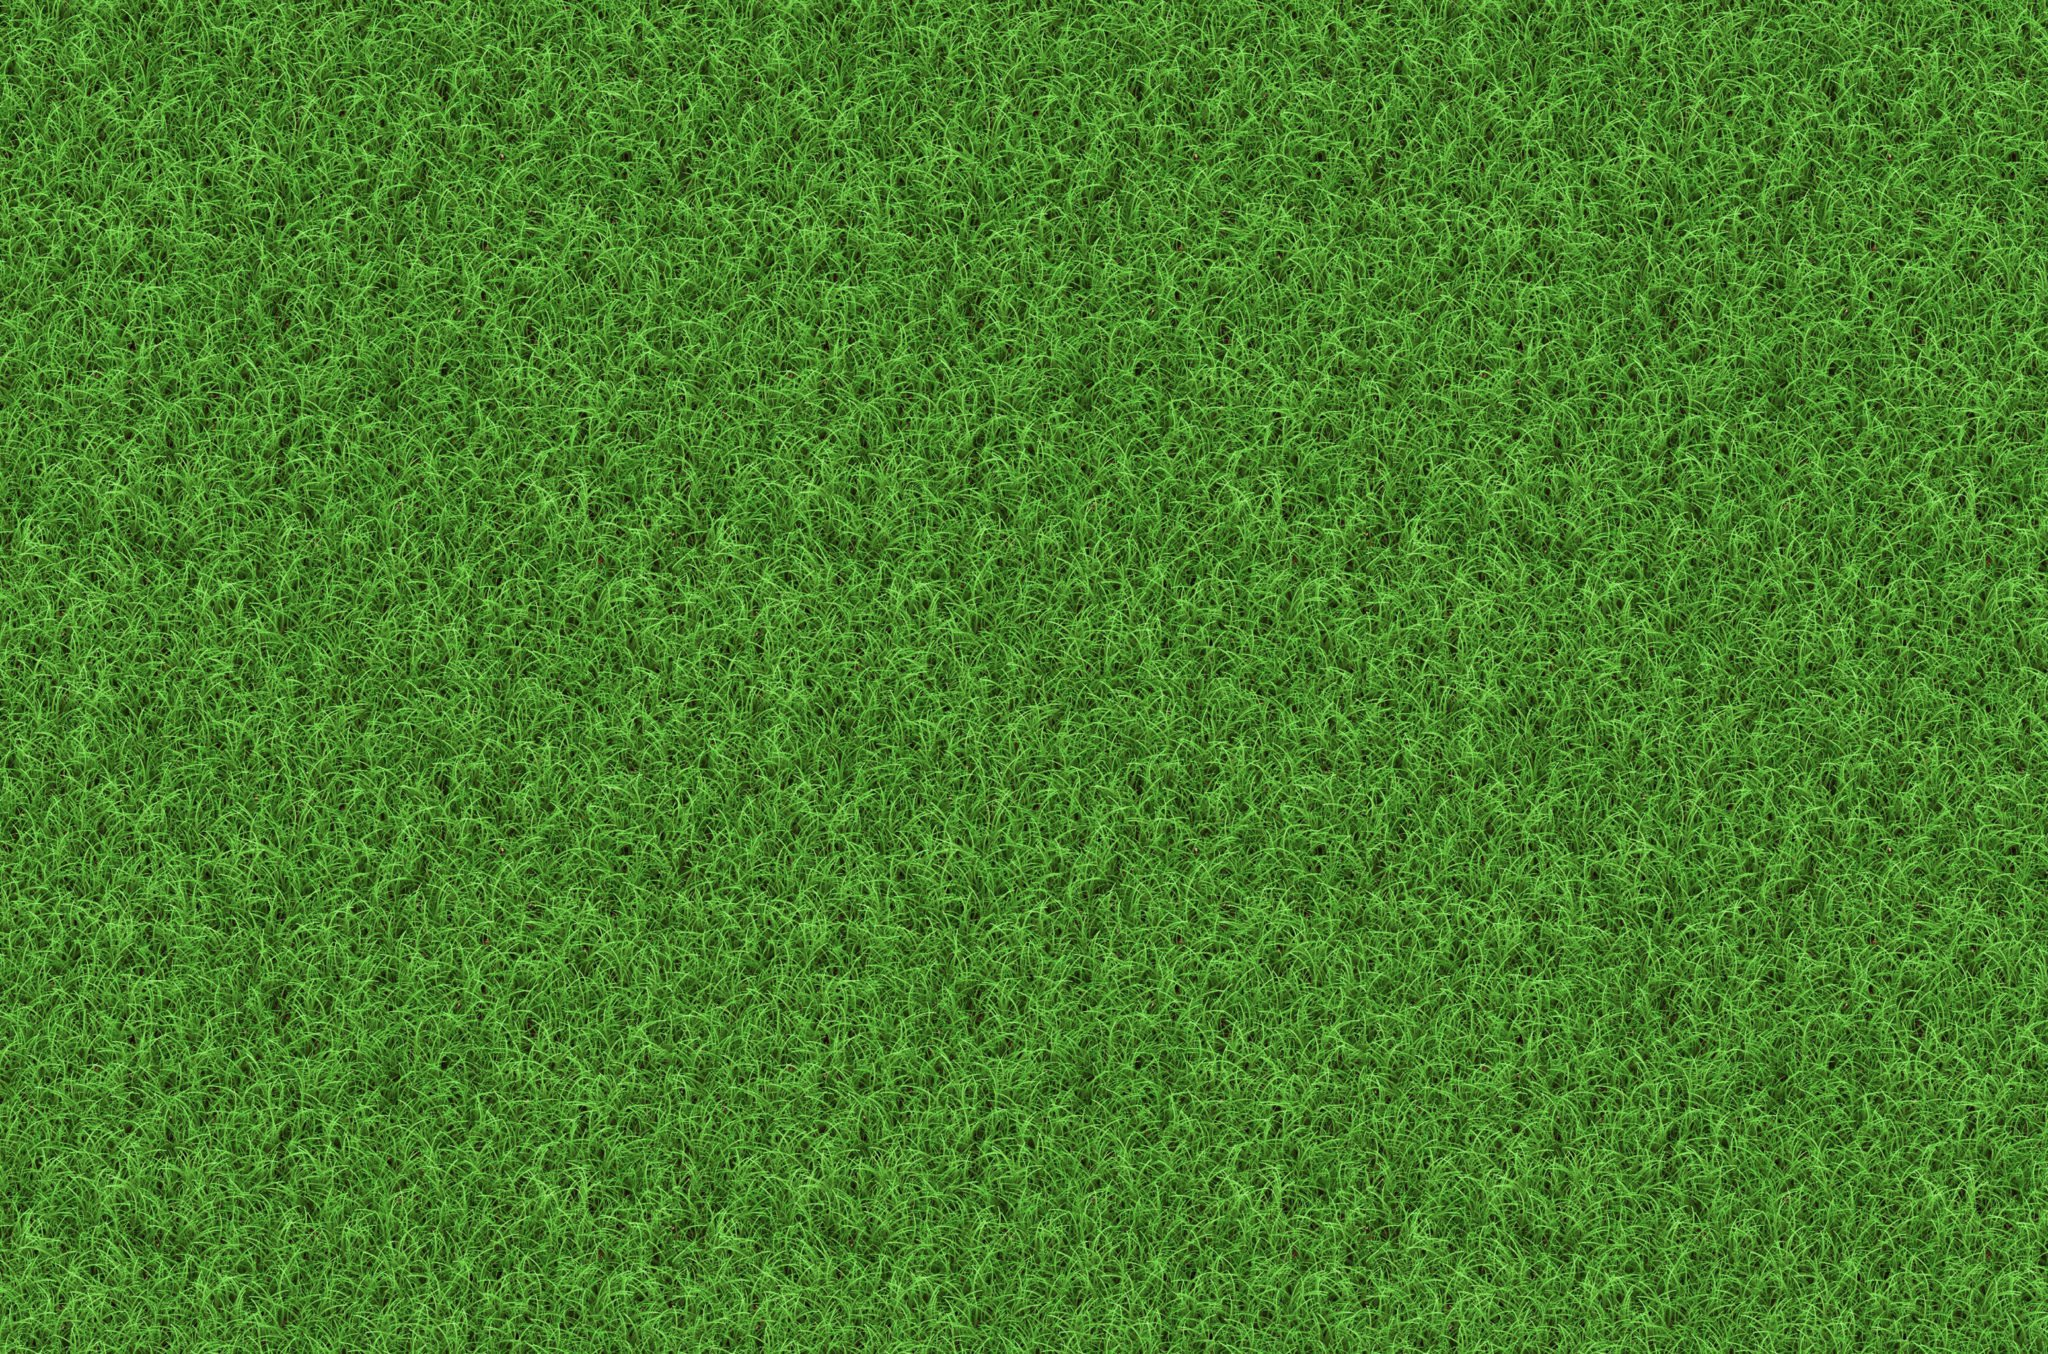 generated grass texture or green lawn background - Double JJ Resort